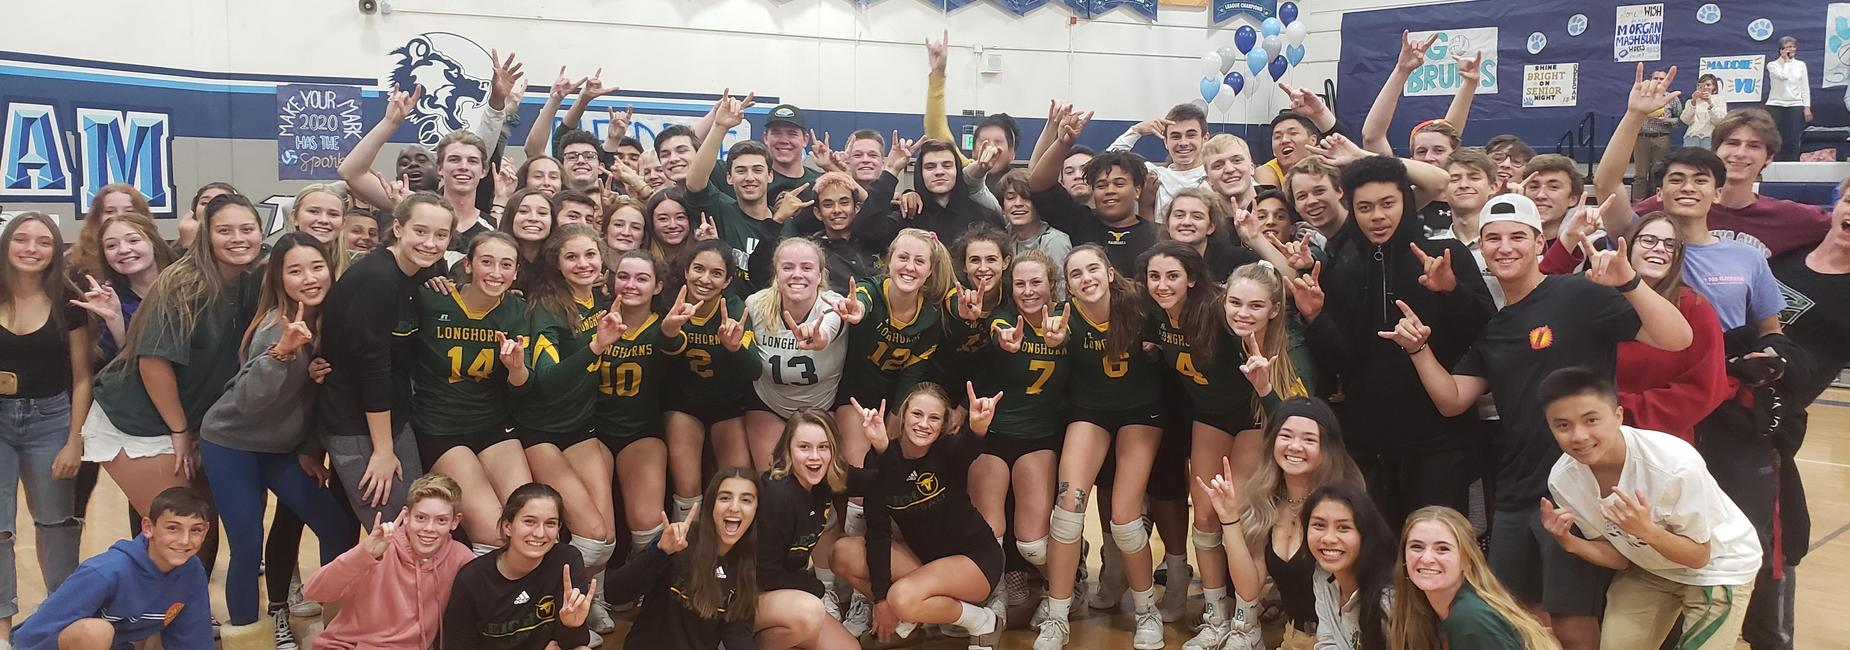 Volleyball team and fans pose after a game